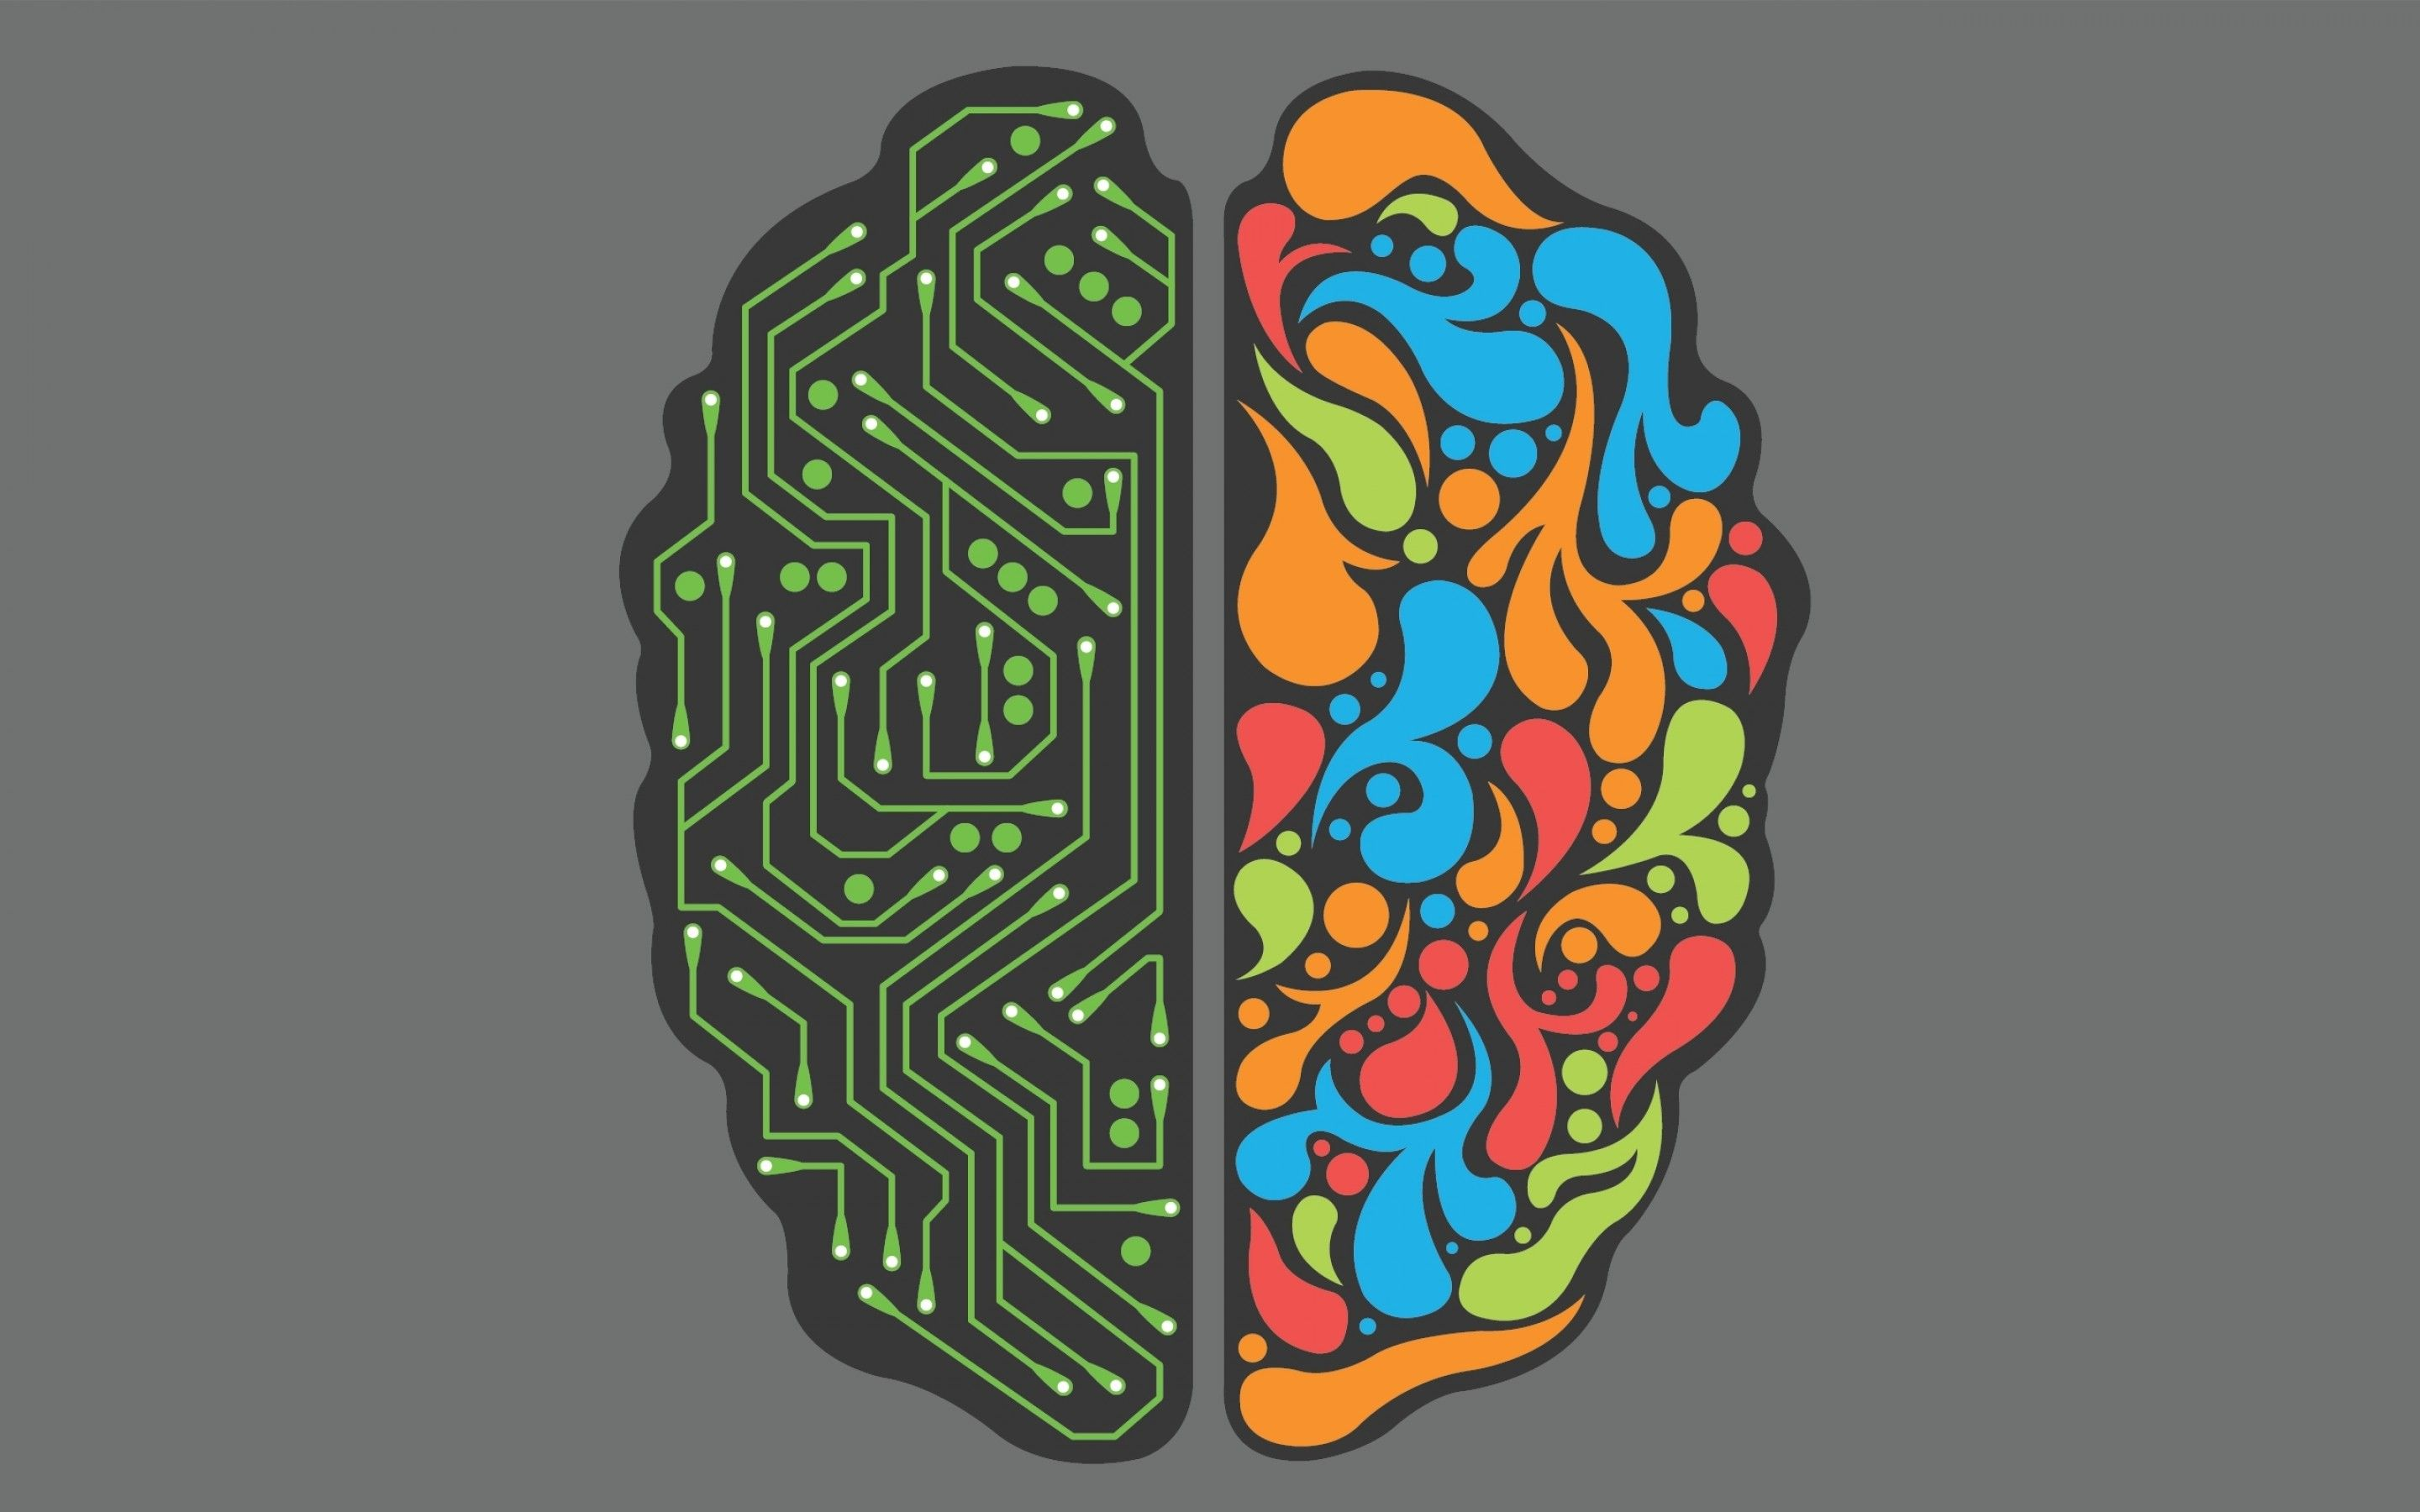 Abstract Minimalistic Circuit Brain Wallpapers Feed Brain Art Right Brain Left Brain Right Brain